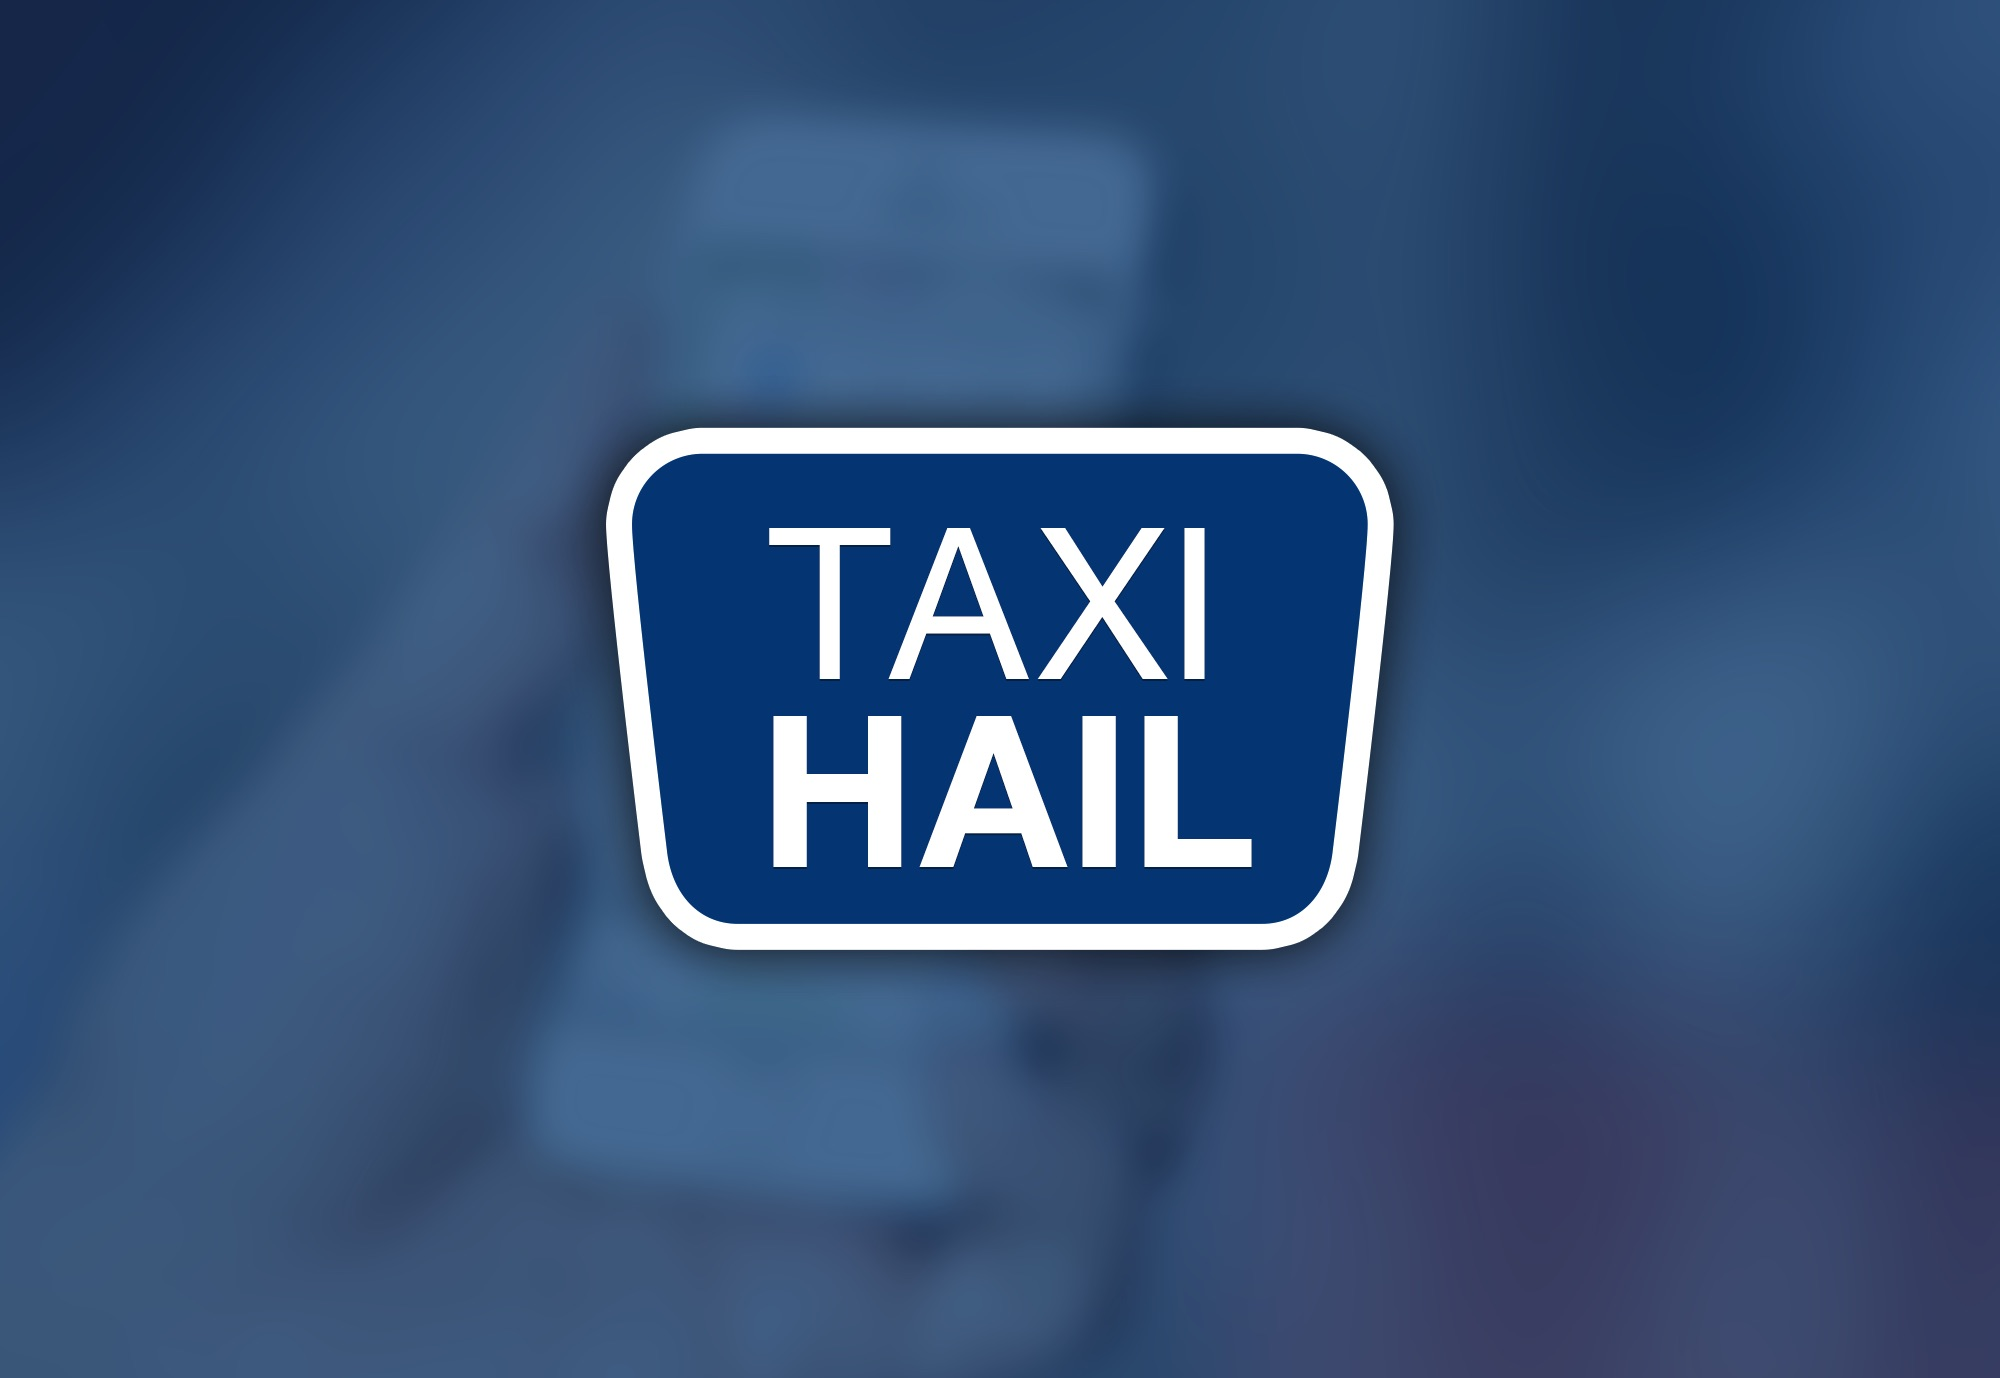 TaxiHail